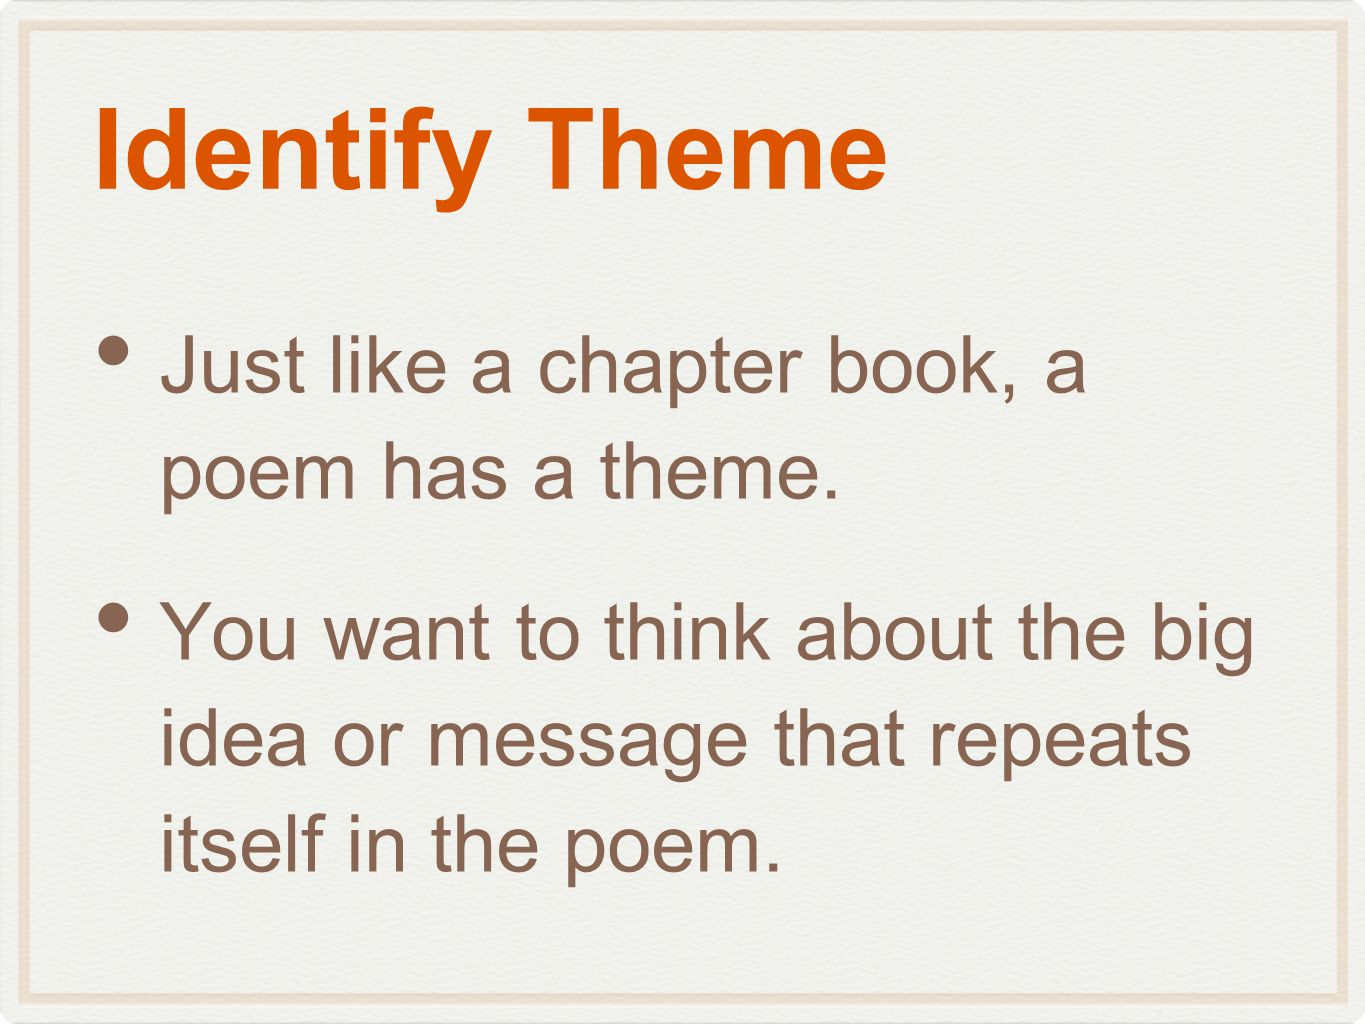 Identify Theme Just like a chapter book, a poem has a theme. You want to think about the big idea or message that repeats itself in the poem.